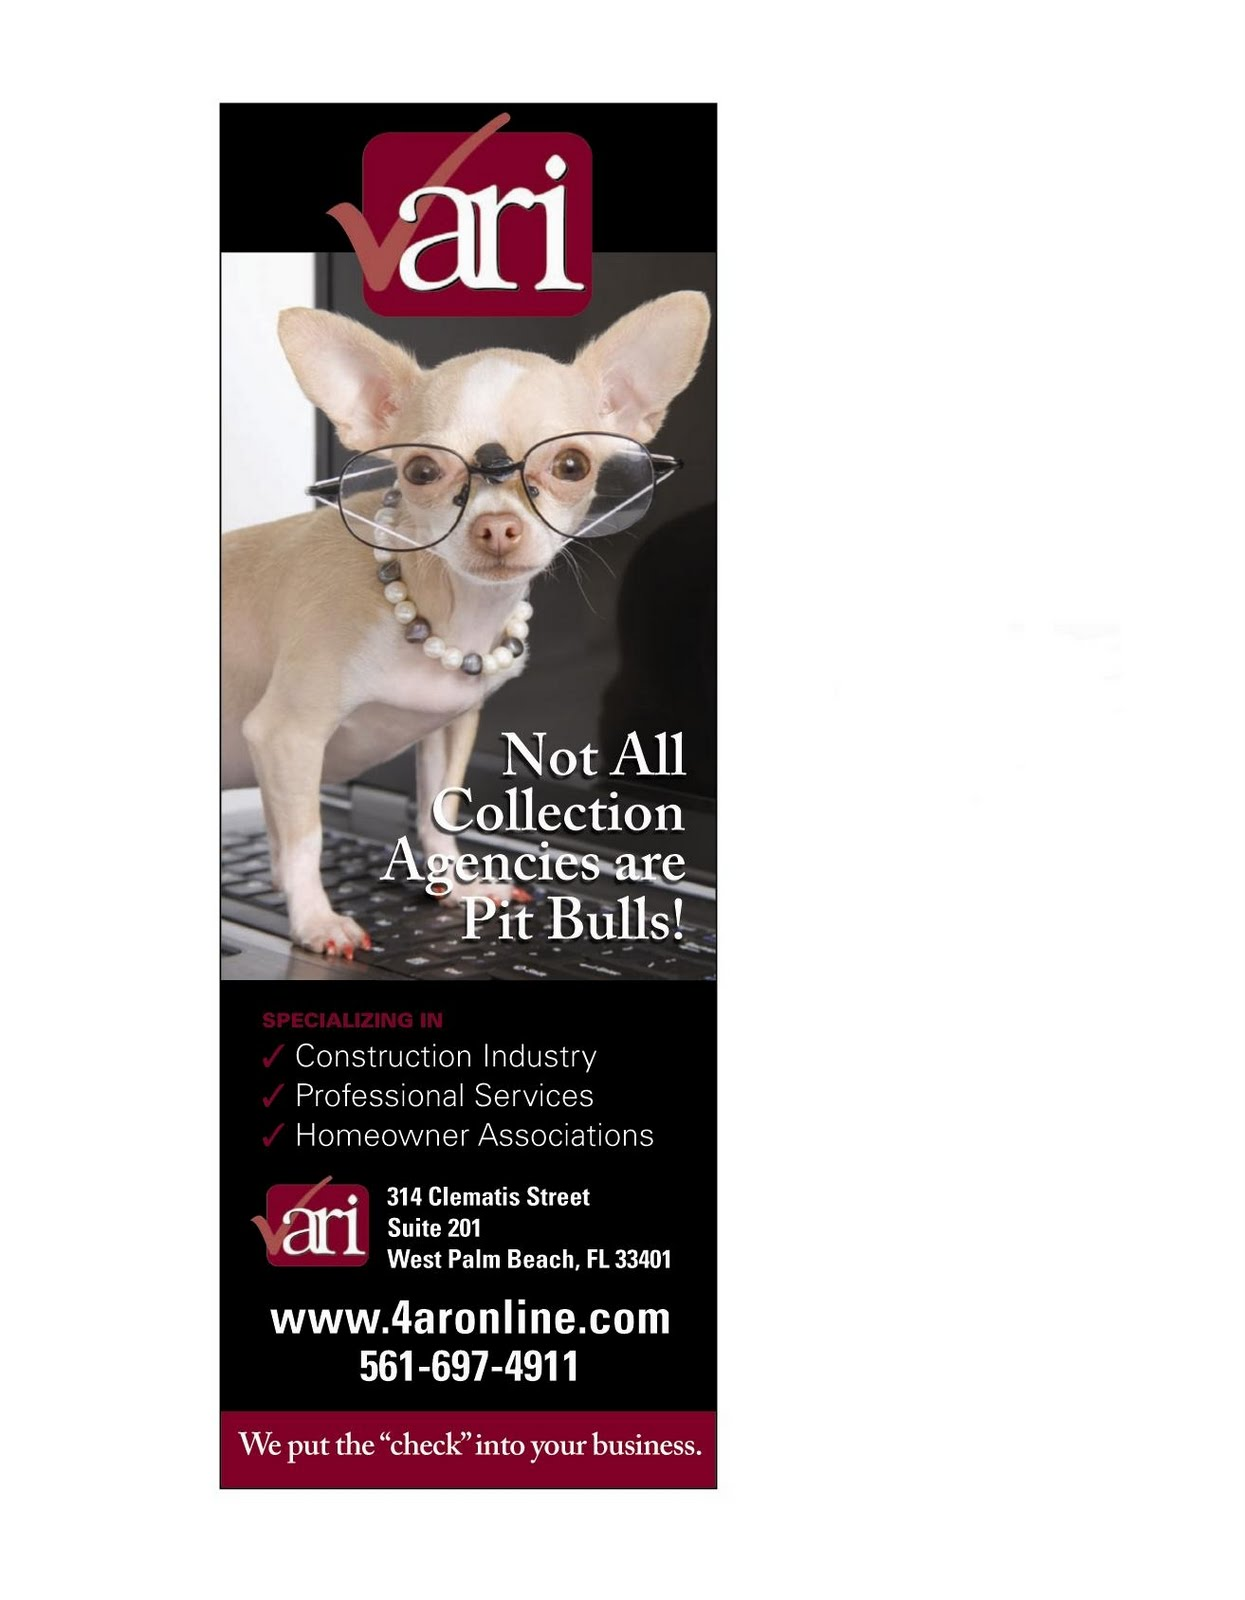 [ARI+Not+All+Collection+Agencies+Are+Pit+Bulls.JPG]